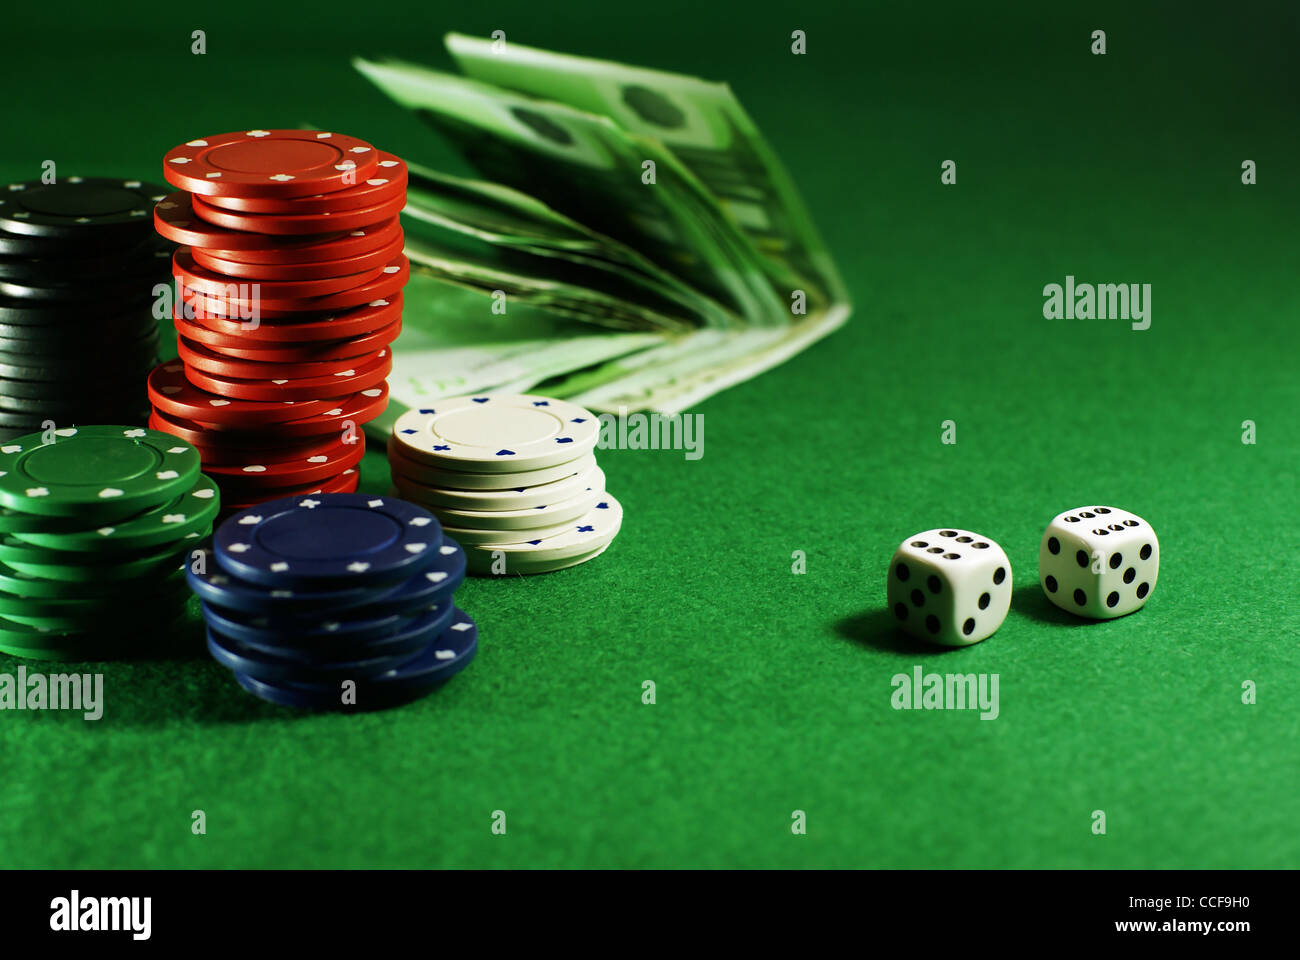 craps on the green table with dibs and money - Stock Image